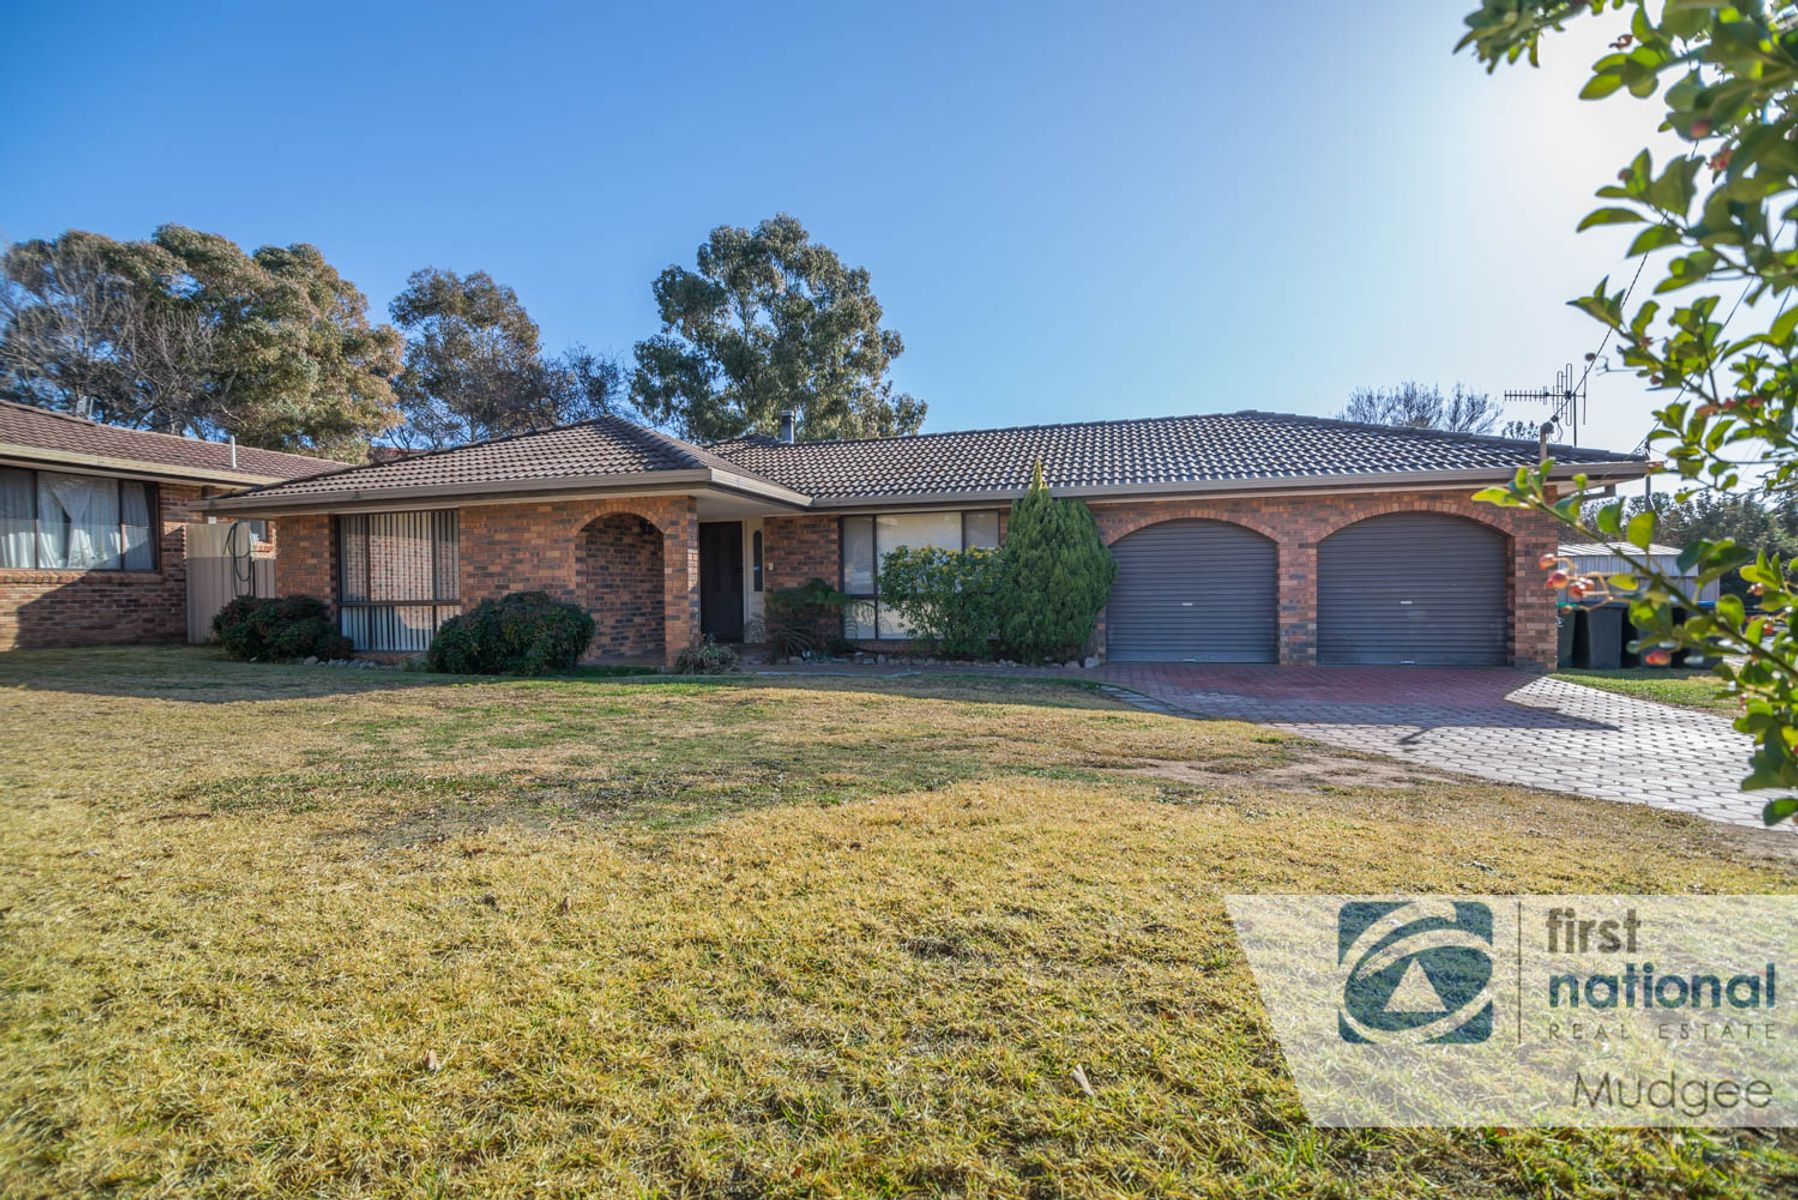 15 Mountain View Road, Mudgee, NSW 2850